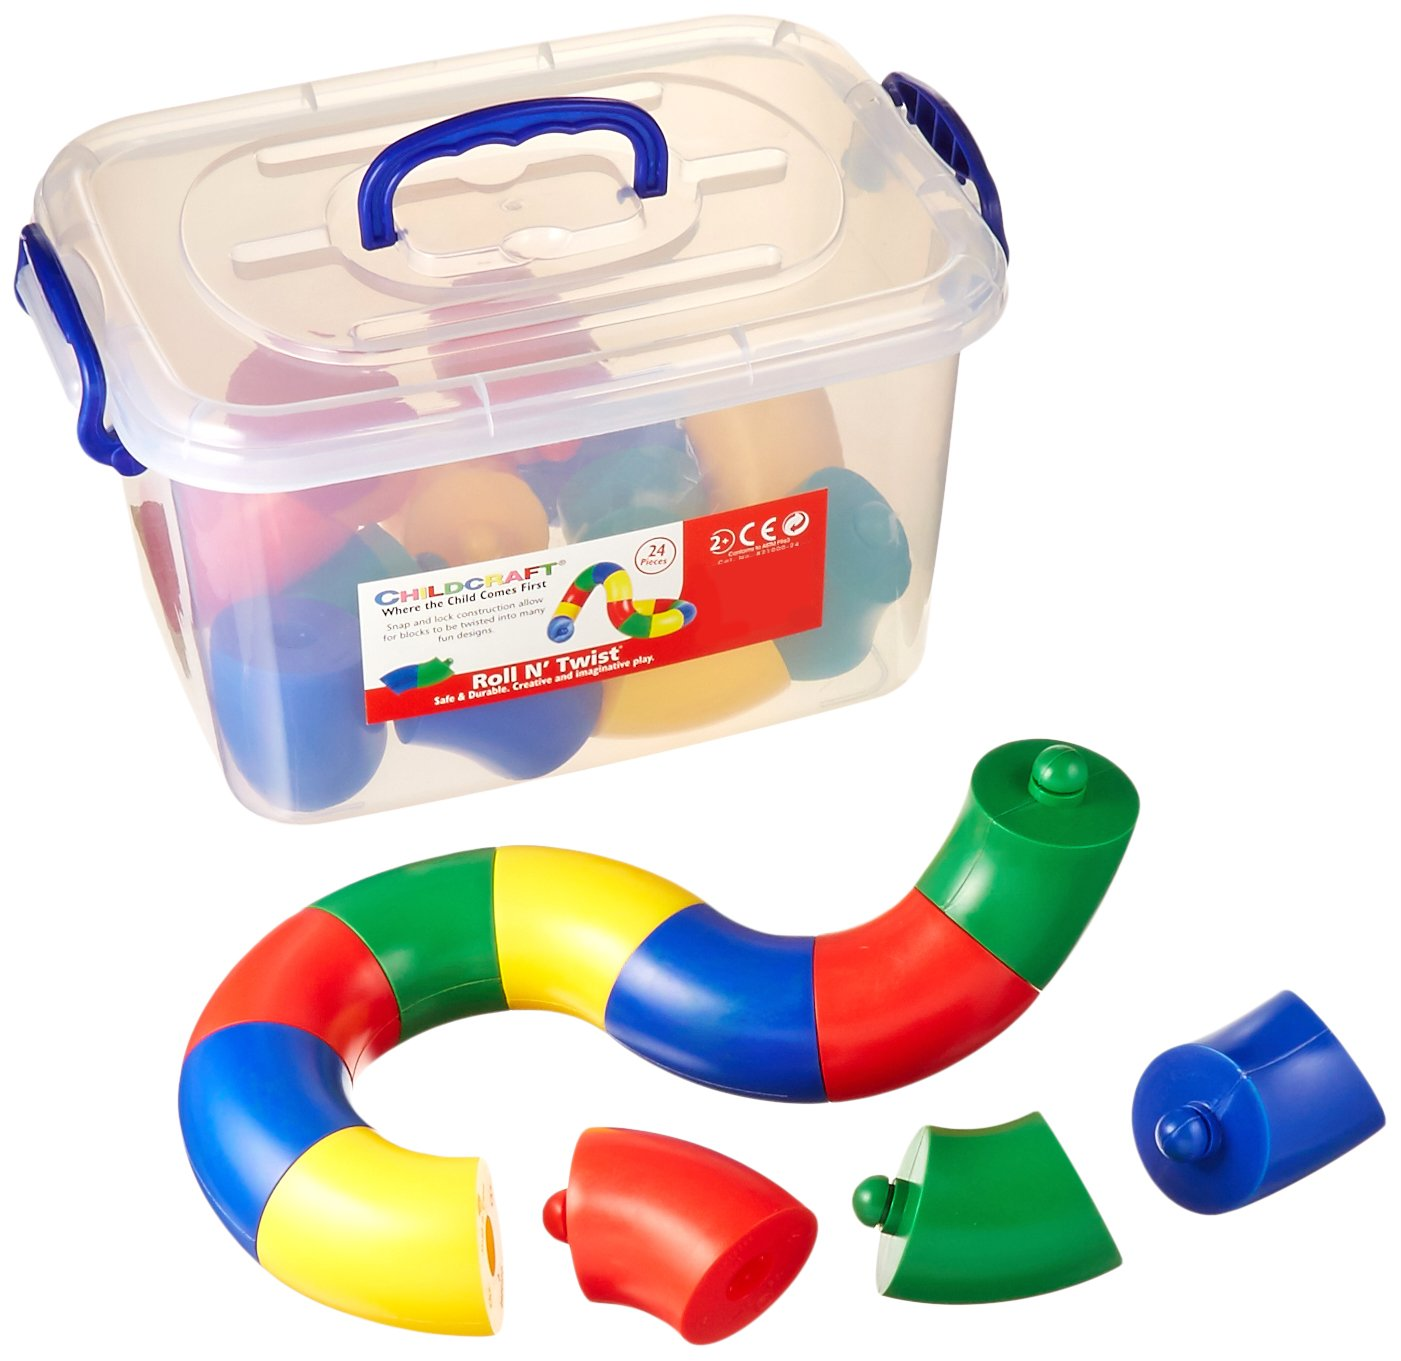 Childcraft Toddler Manipulatives Roll and Twist Set of 24